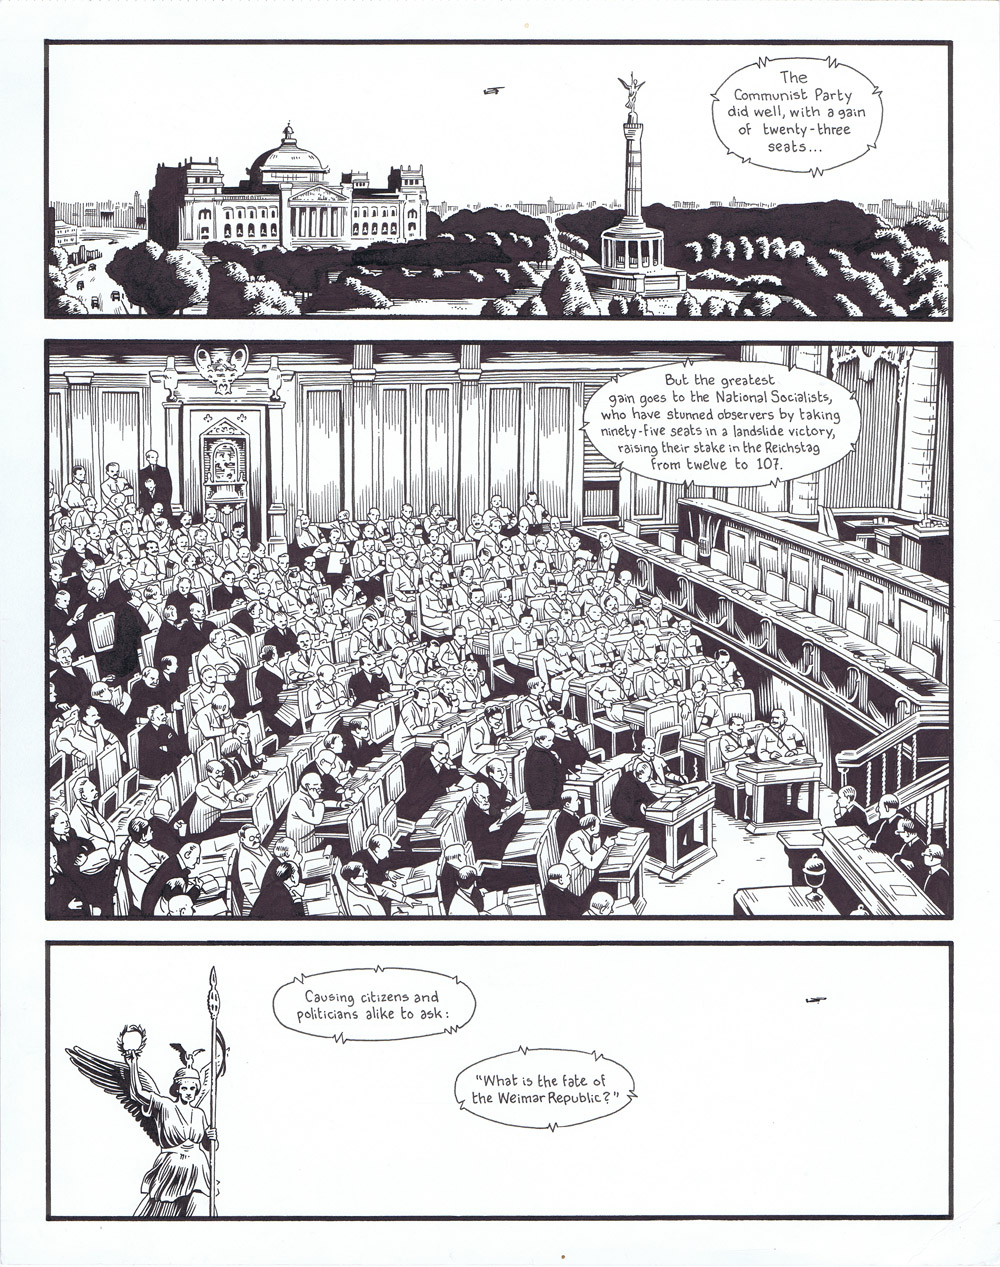 Berlin: Book 2 - page 210